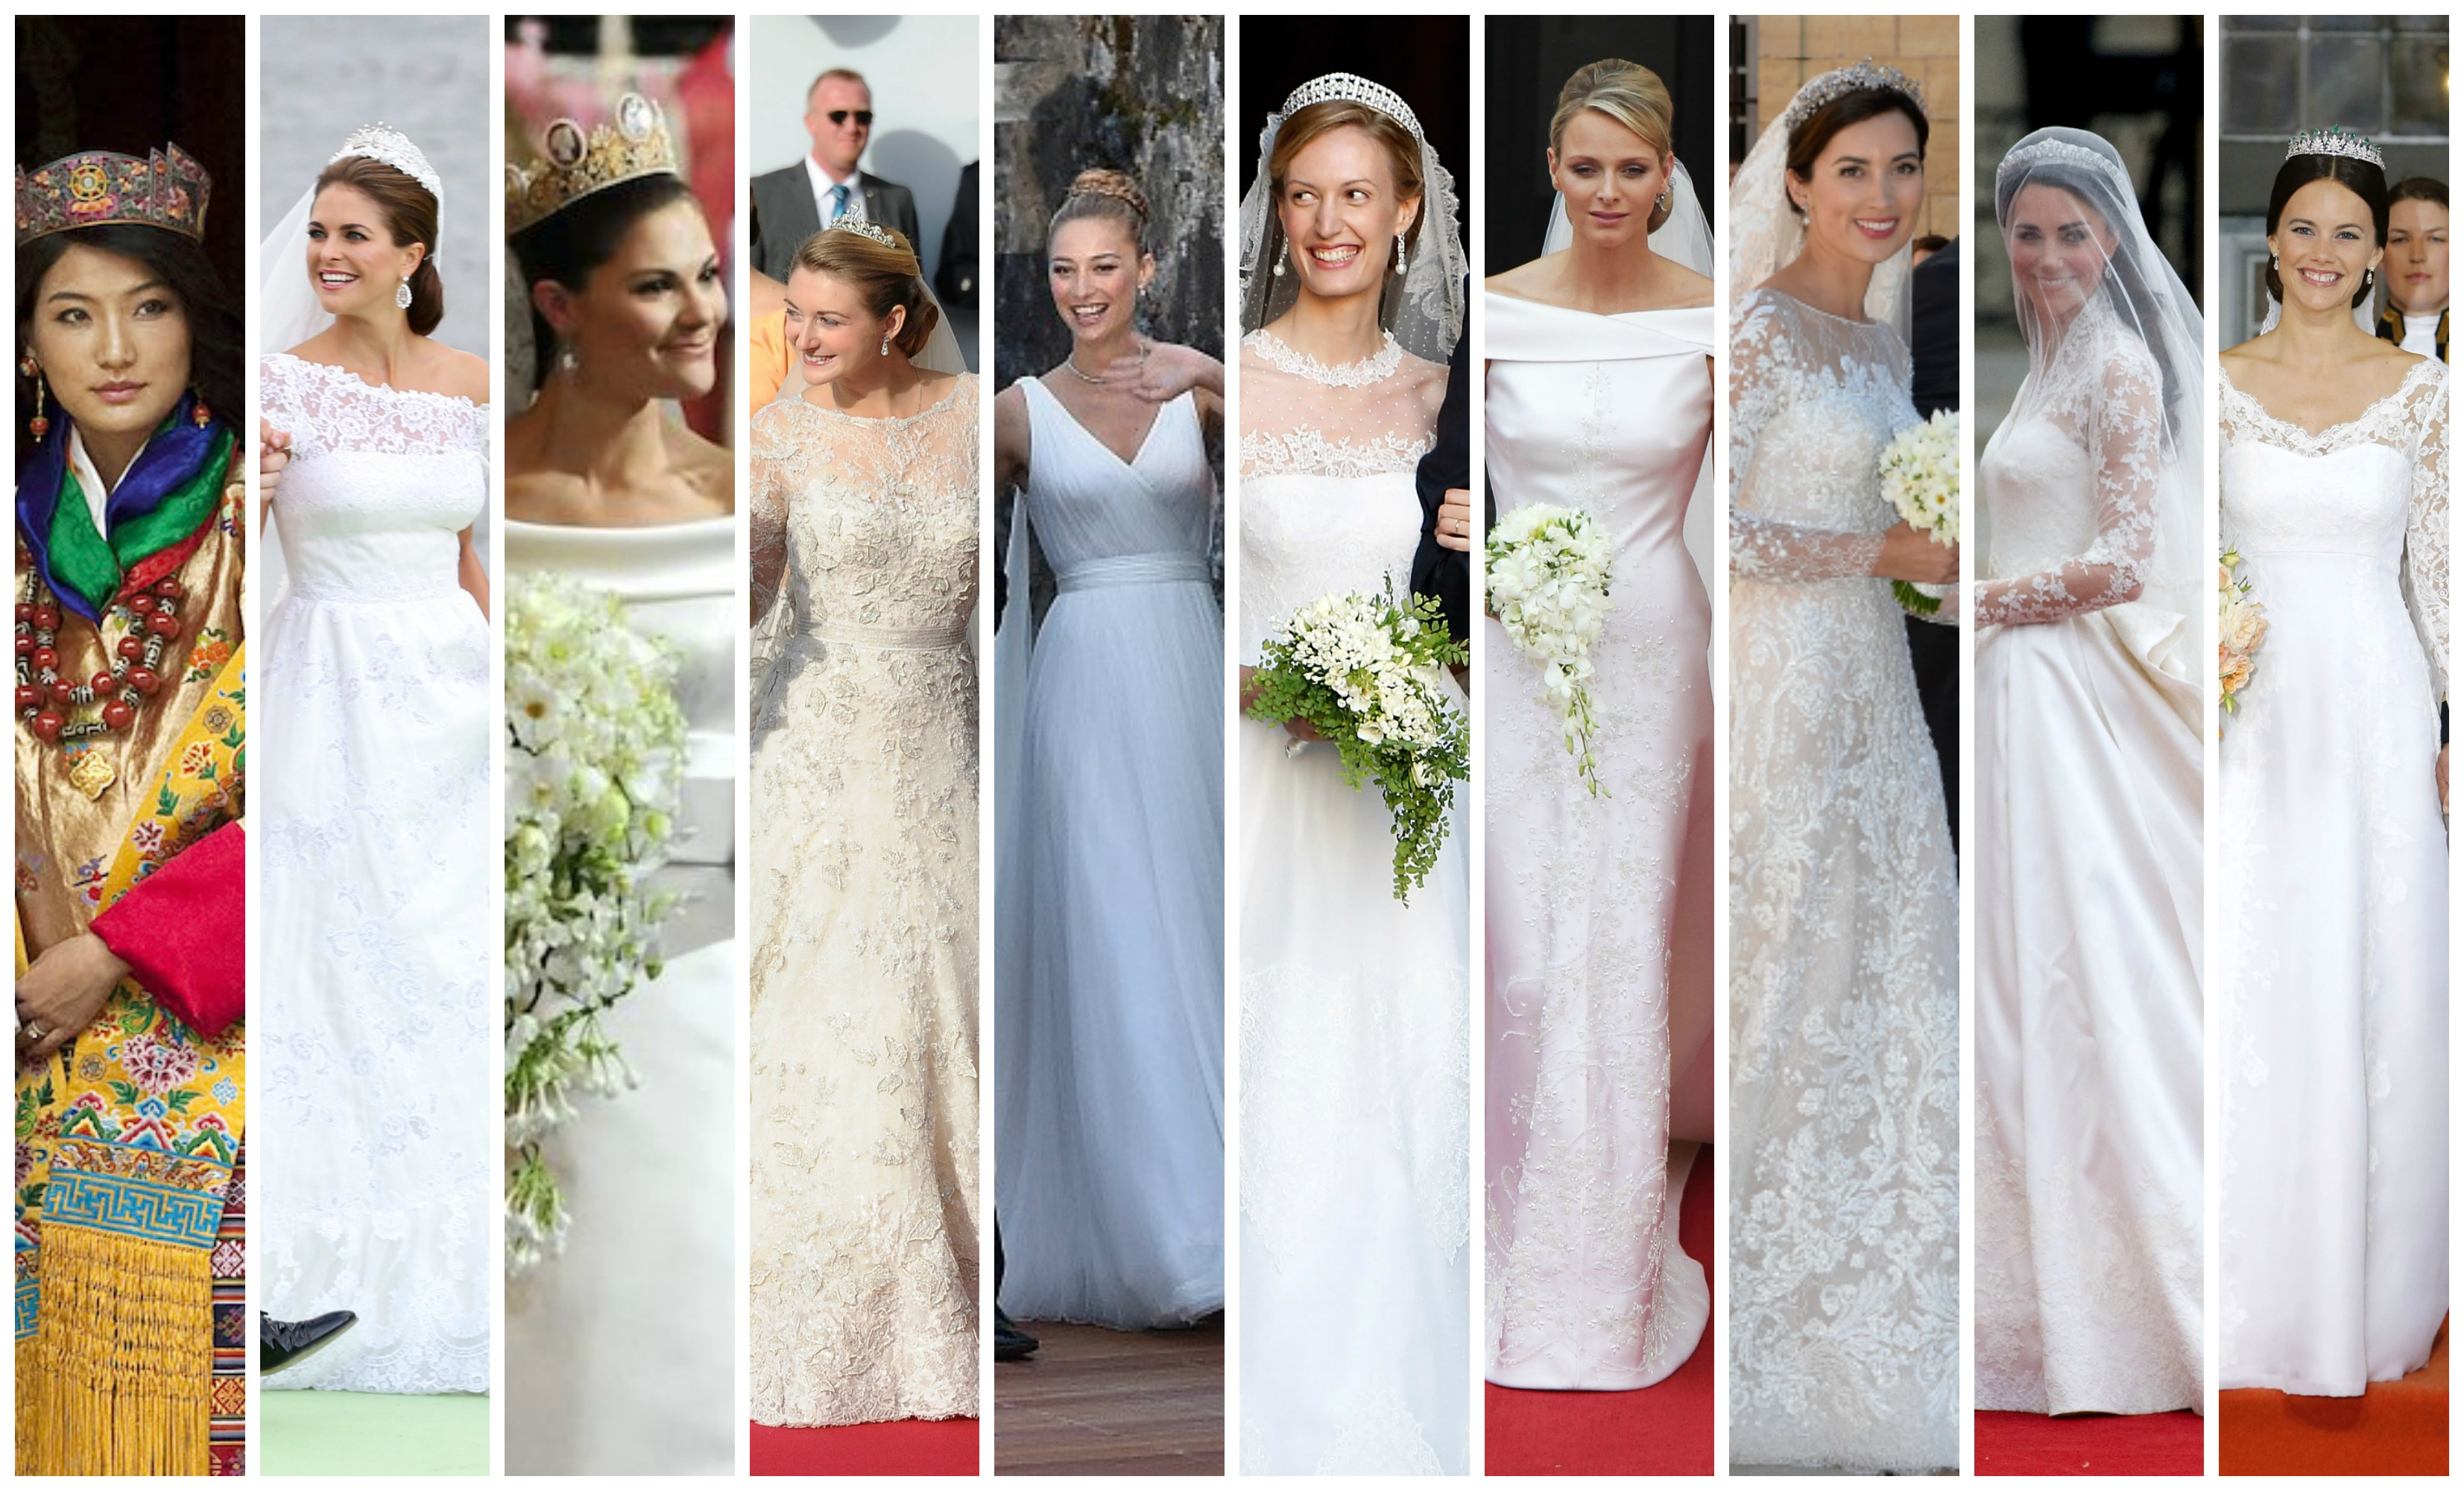 Wedding Gowns Pic: The Last Ten Years Of Royal Wedding Gowns